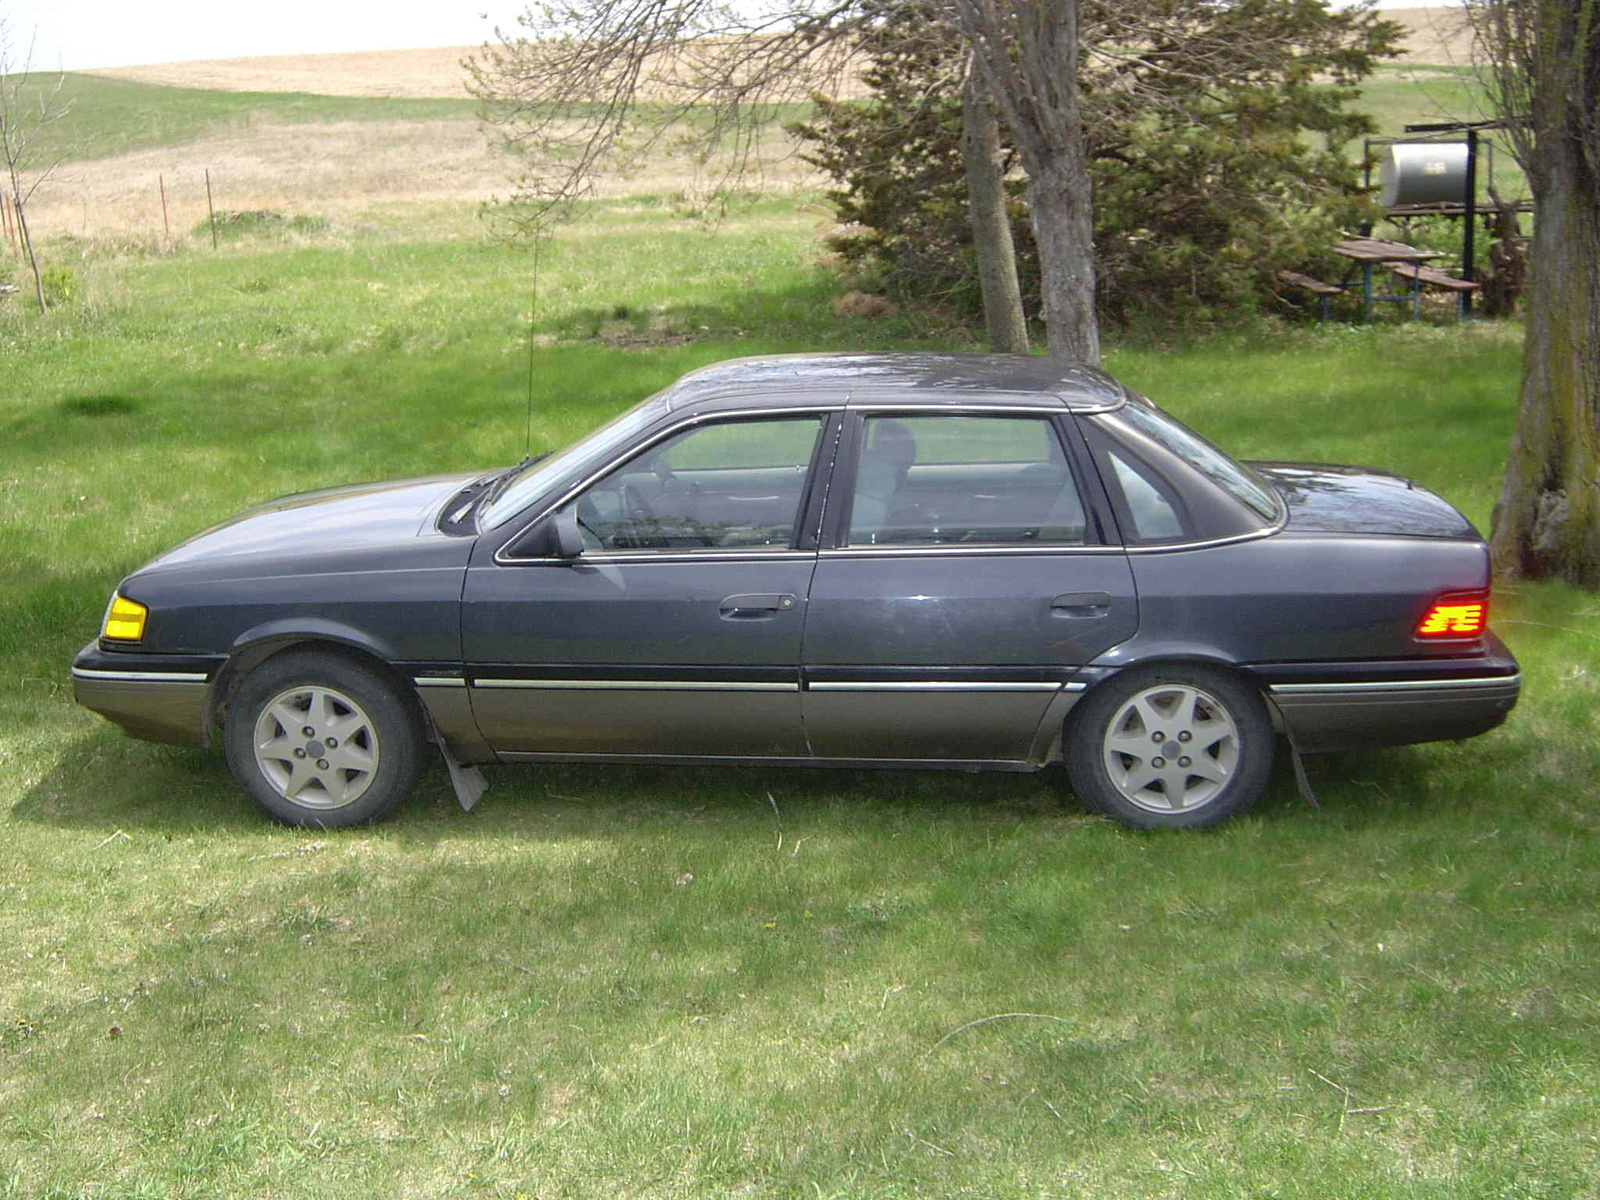 1988 Ford Tempo - Overview